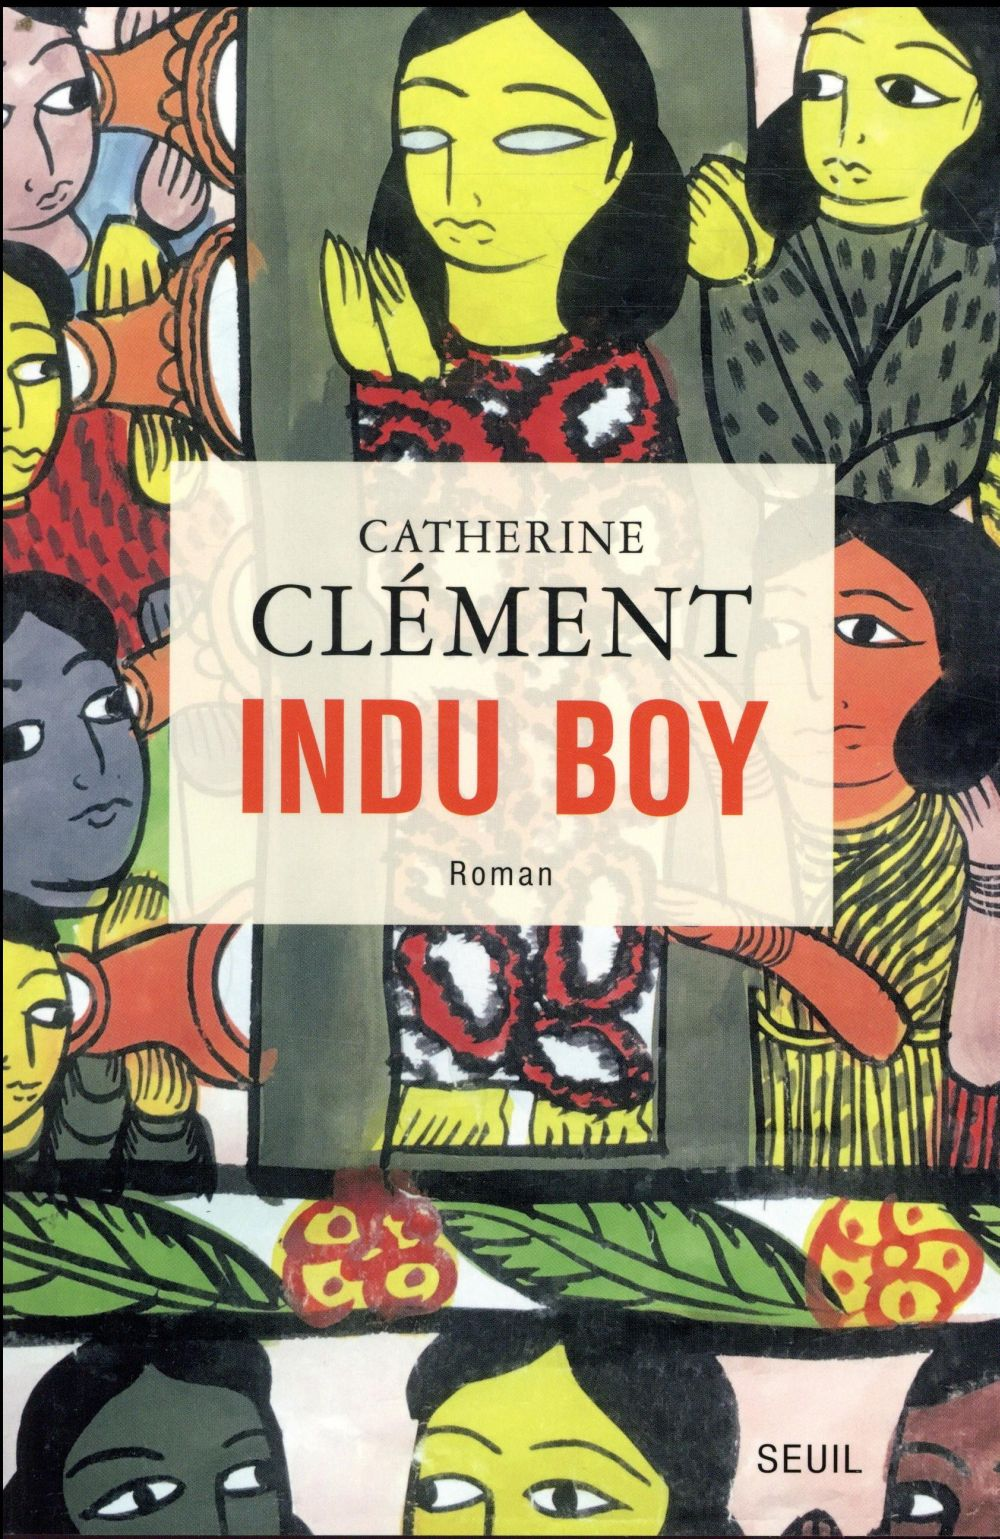 INDU BOY CLEMENT CATHERINE SEUIL